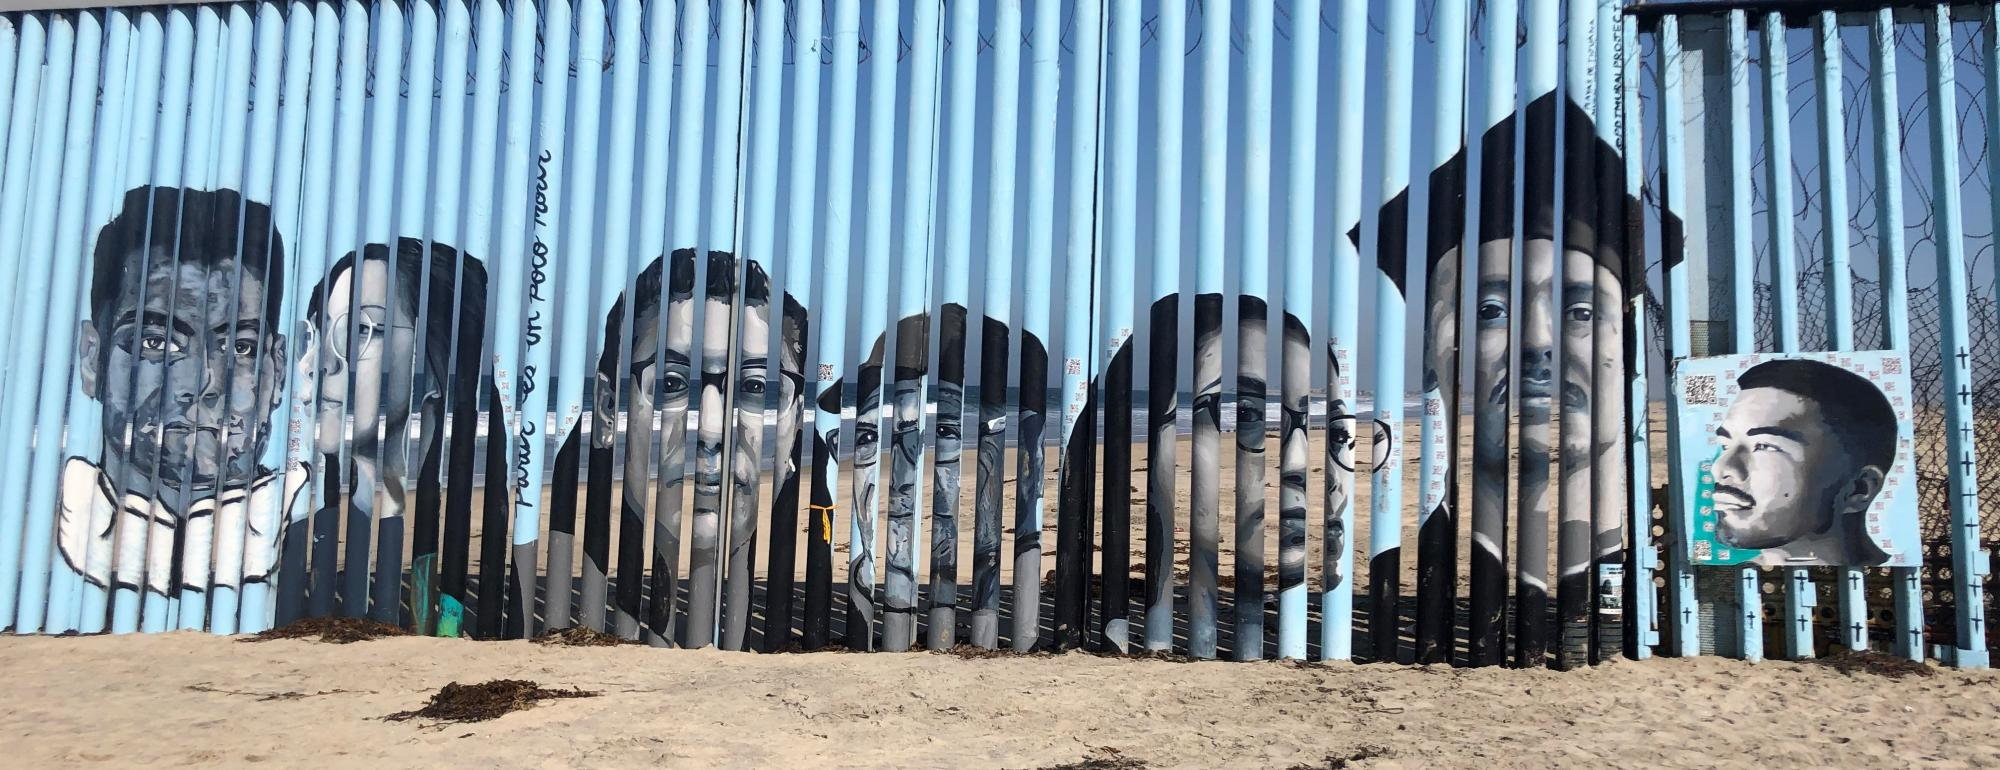 Border Mural by Lizbeth De La Cruz Santana